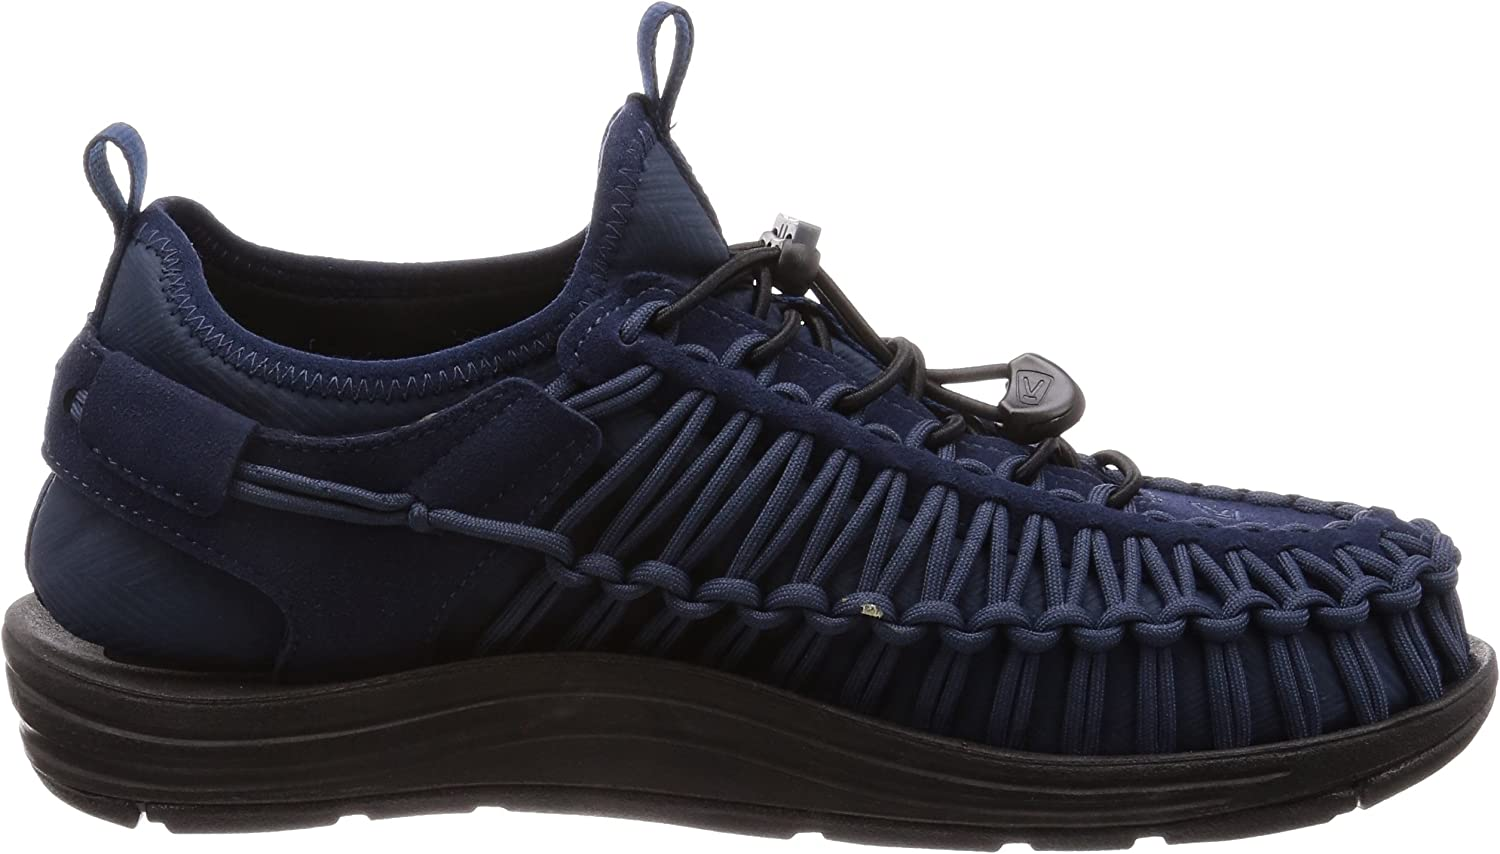 KEEN Womens Explore Mid Imperm/éable High Rise Hiking Shoes